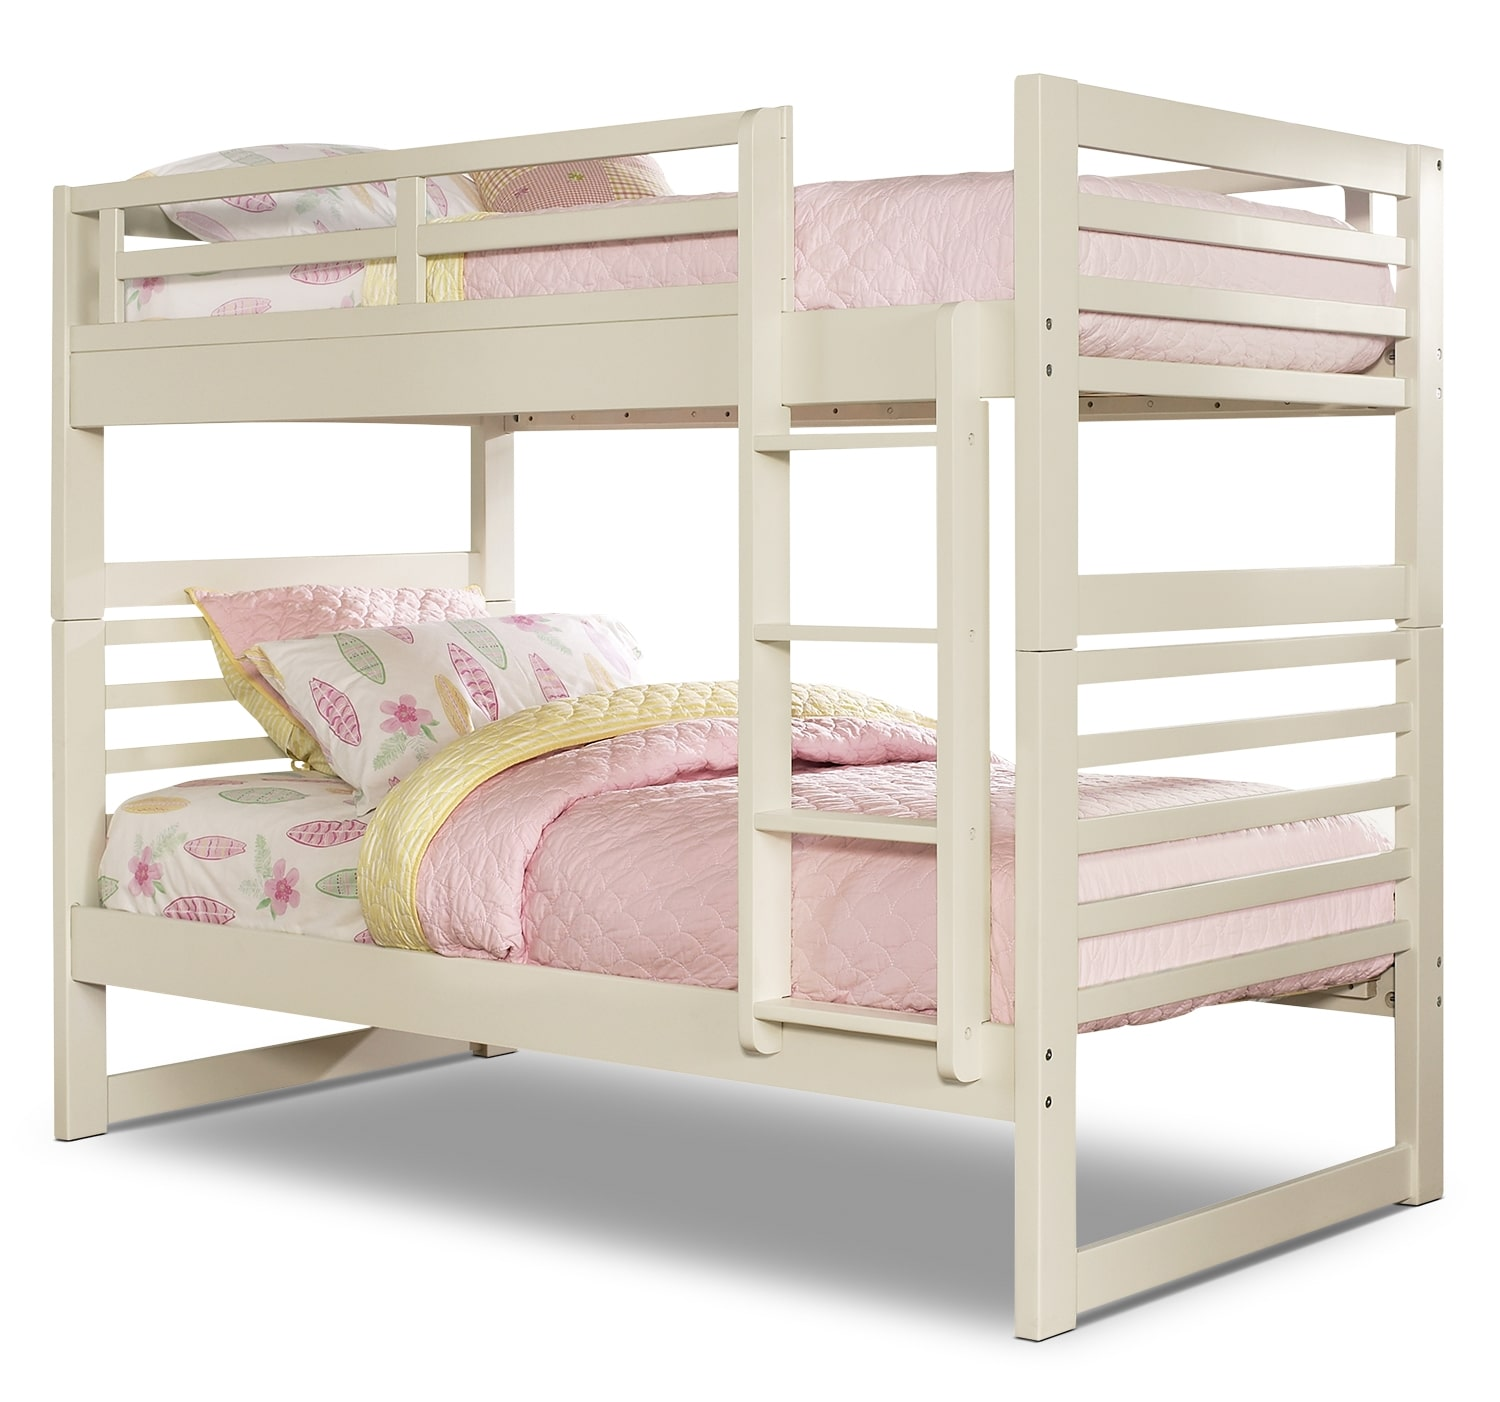 Furniture Surplus Kitchener Bunkbeds The Brick